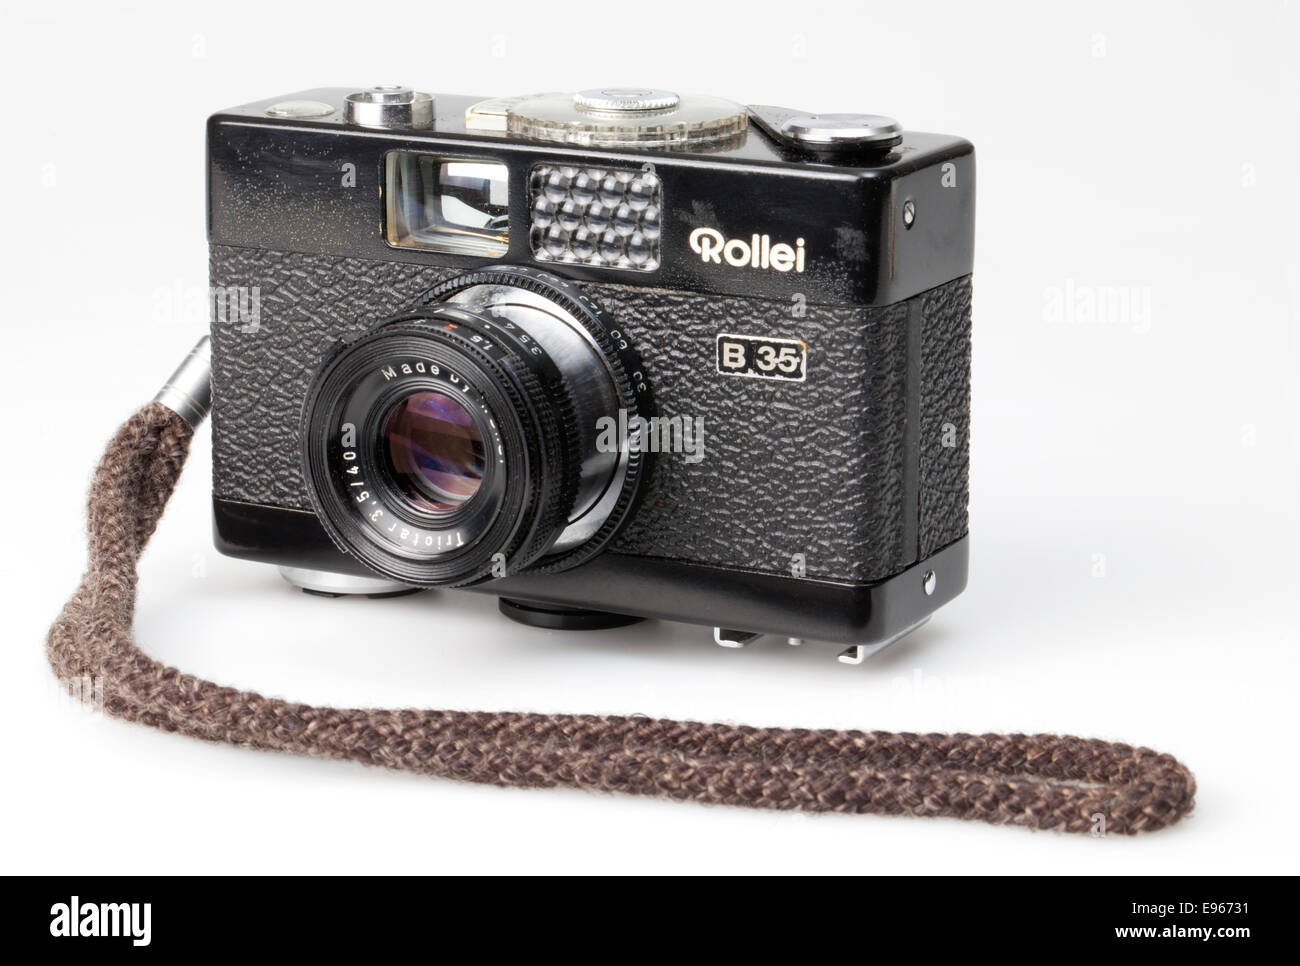 Analogue 35mm film camera, Rollei B 35, - Stock Image